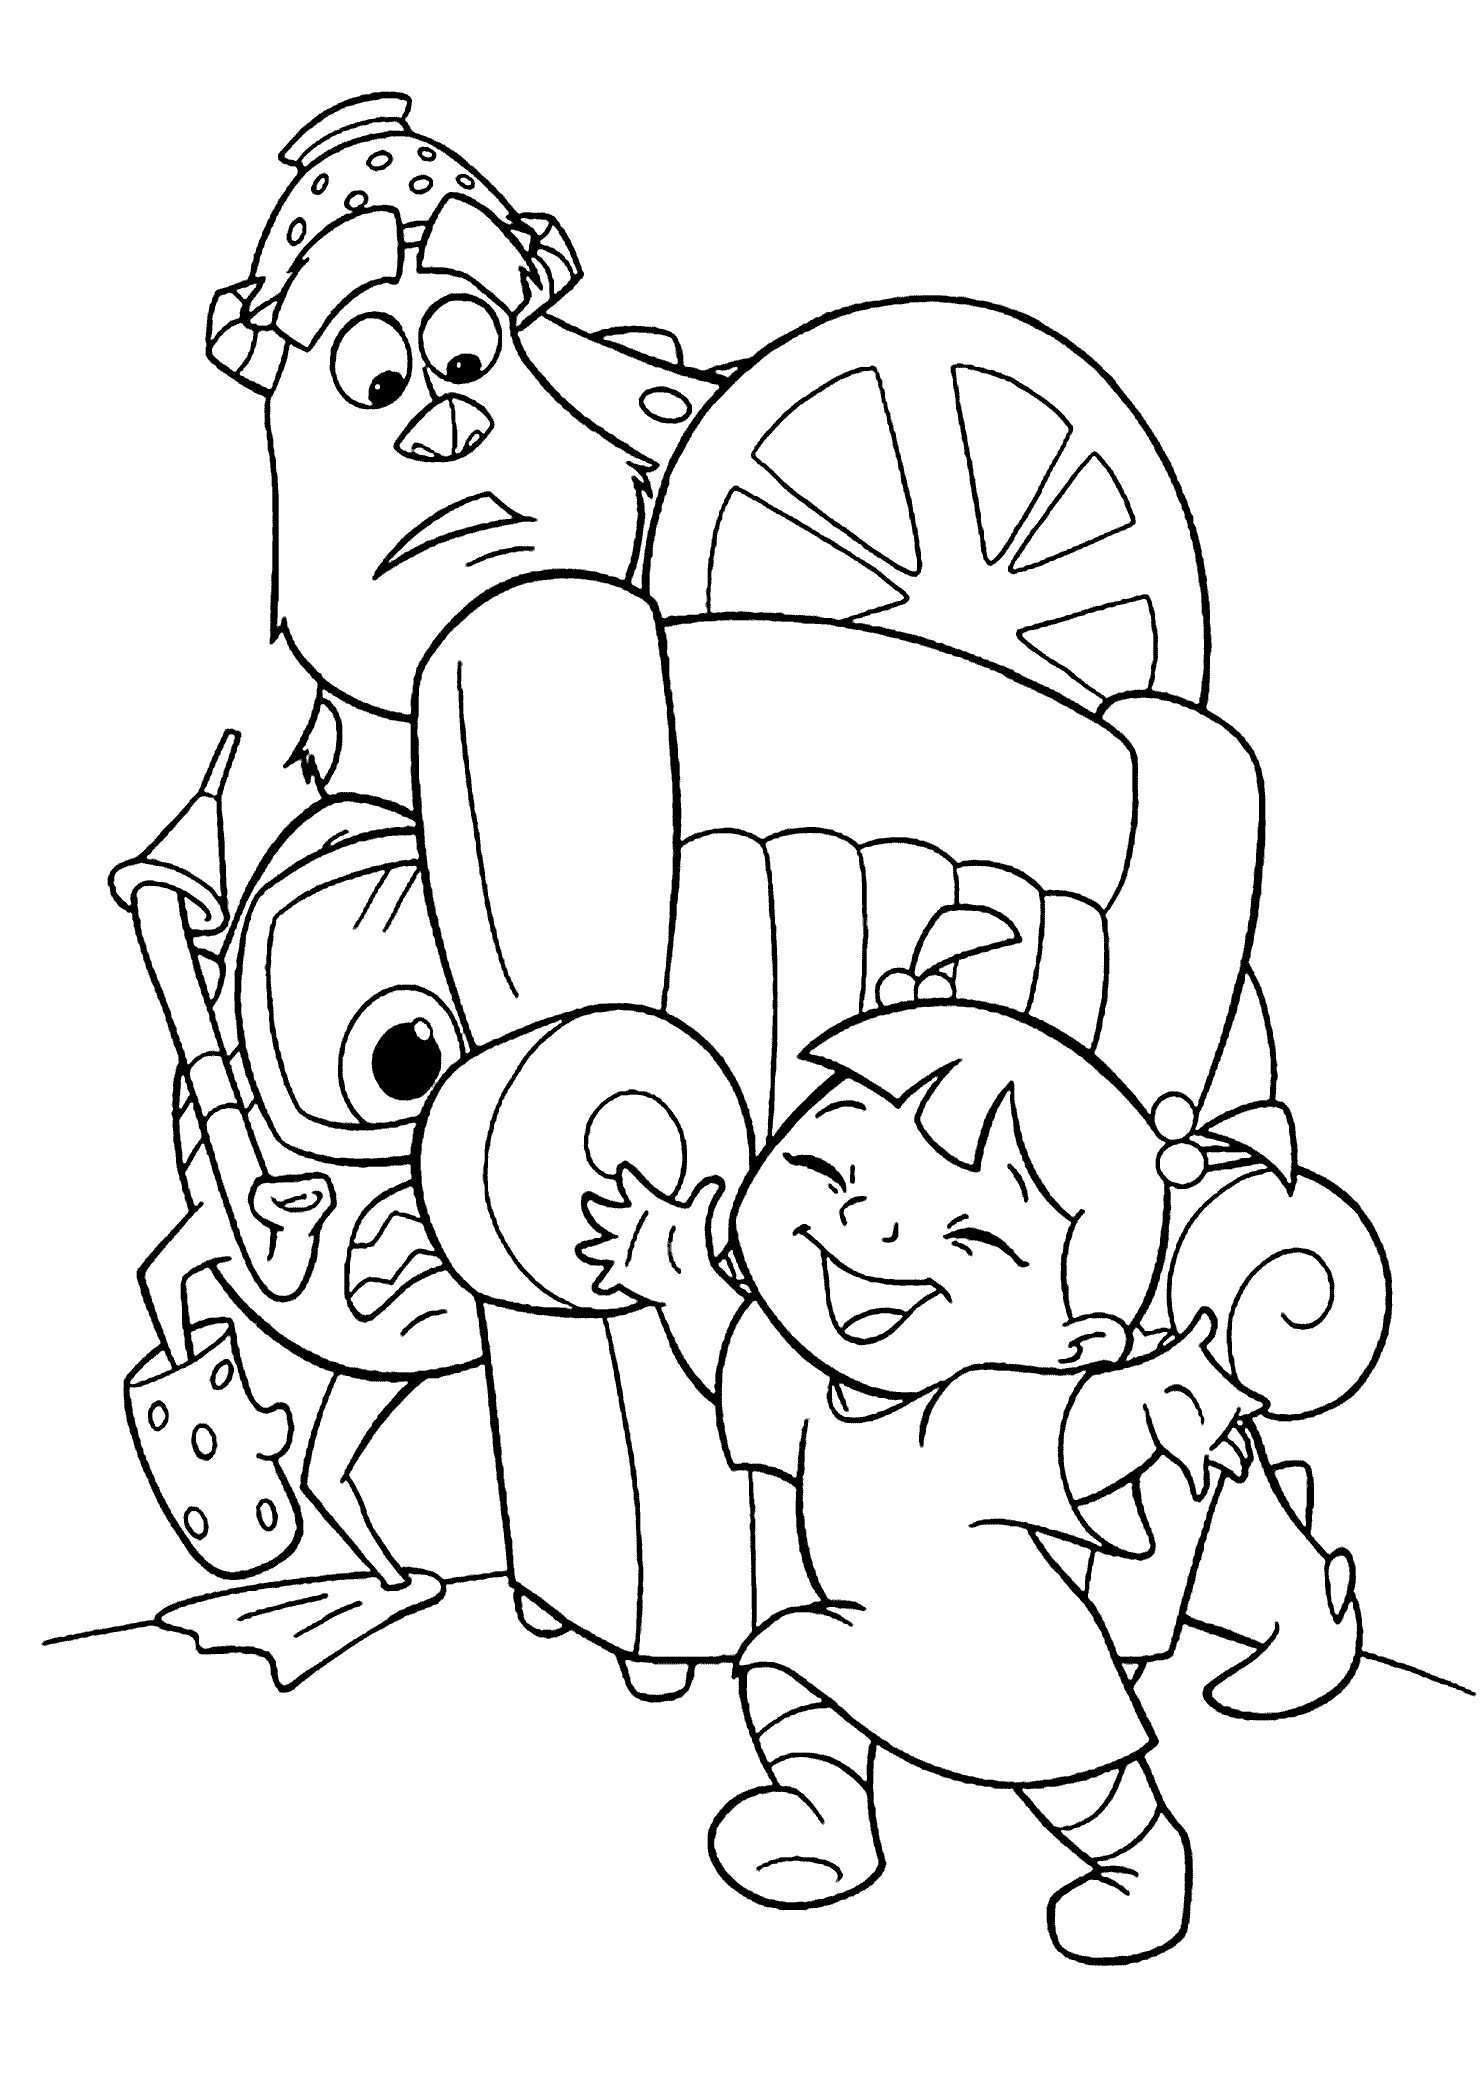 - Monsters Inc Coloring Page - Google Search Disney Coloring Pages